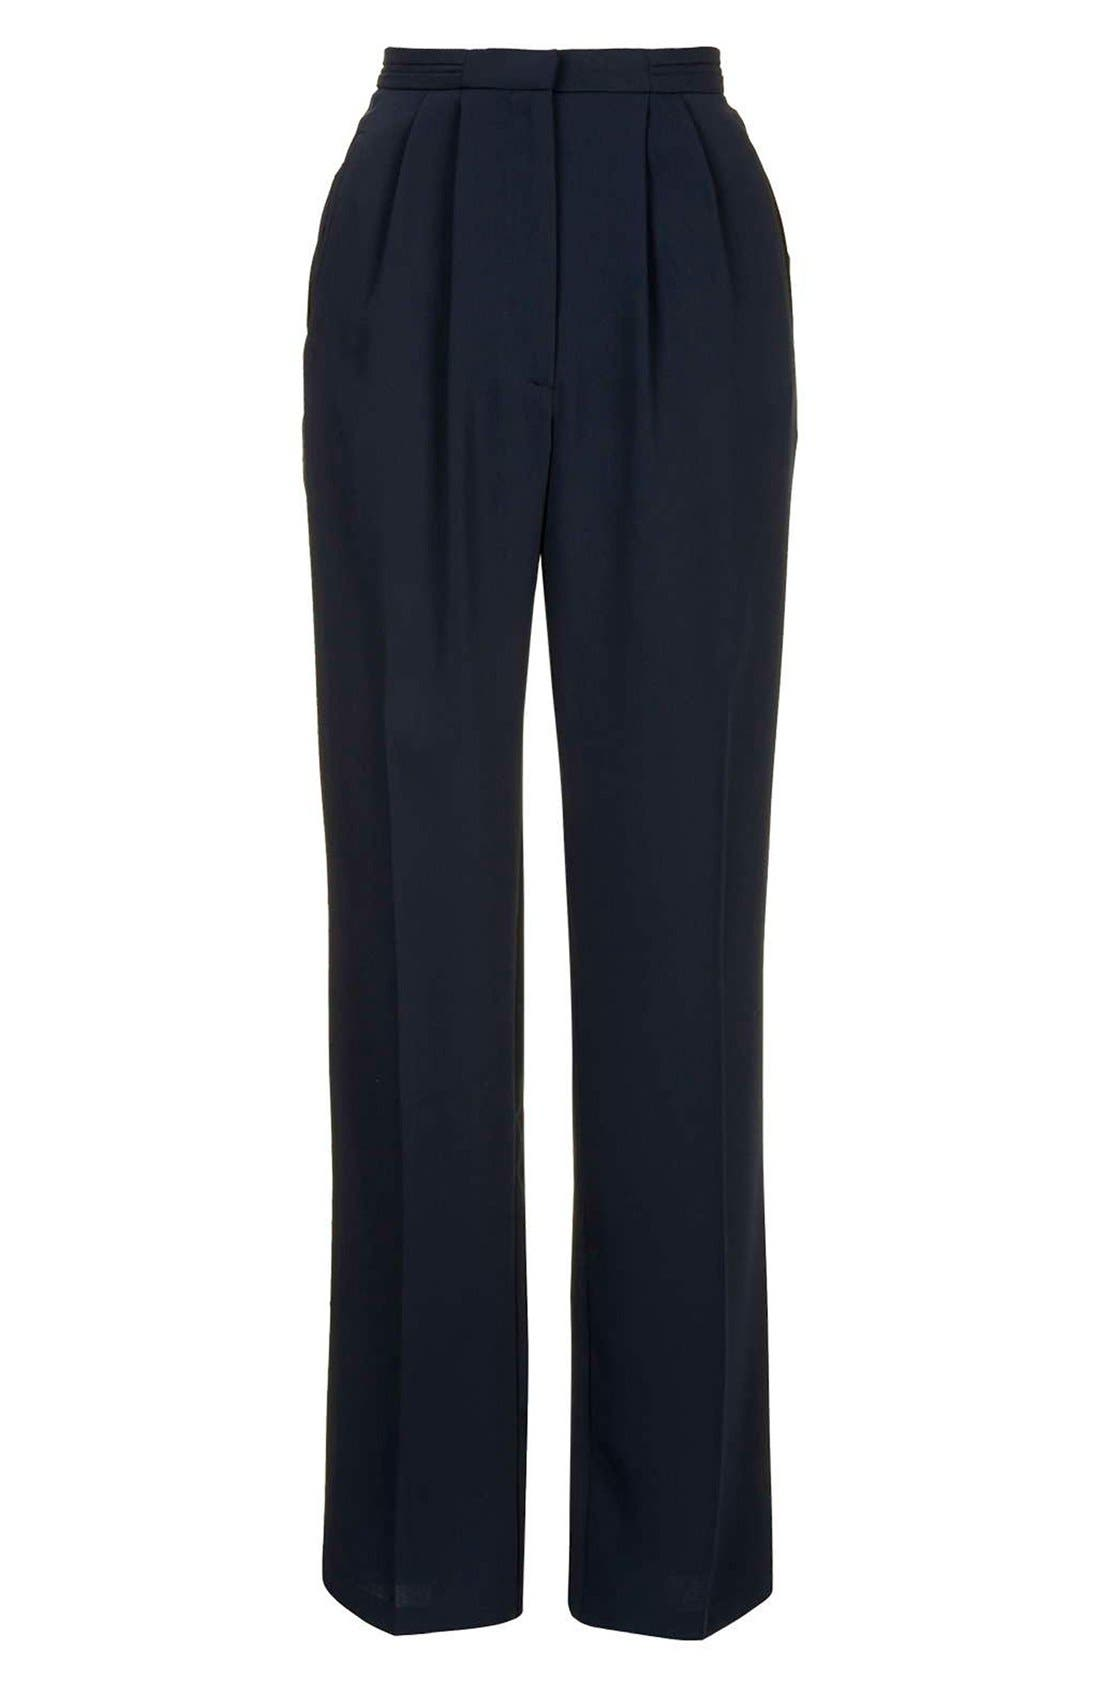 Slouchy Straight Leg Trousers,                             Alternate thumbnail 3, color,                             Navy Blue